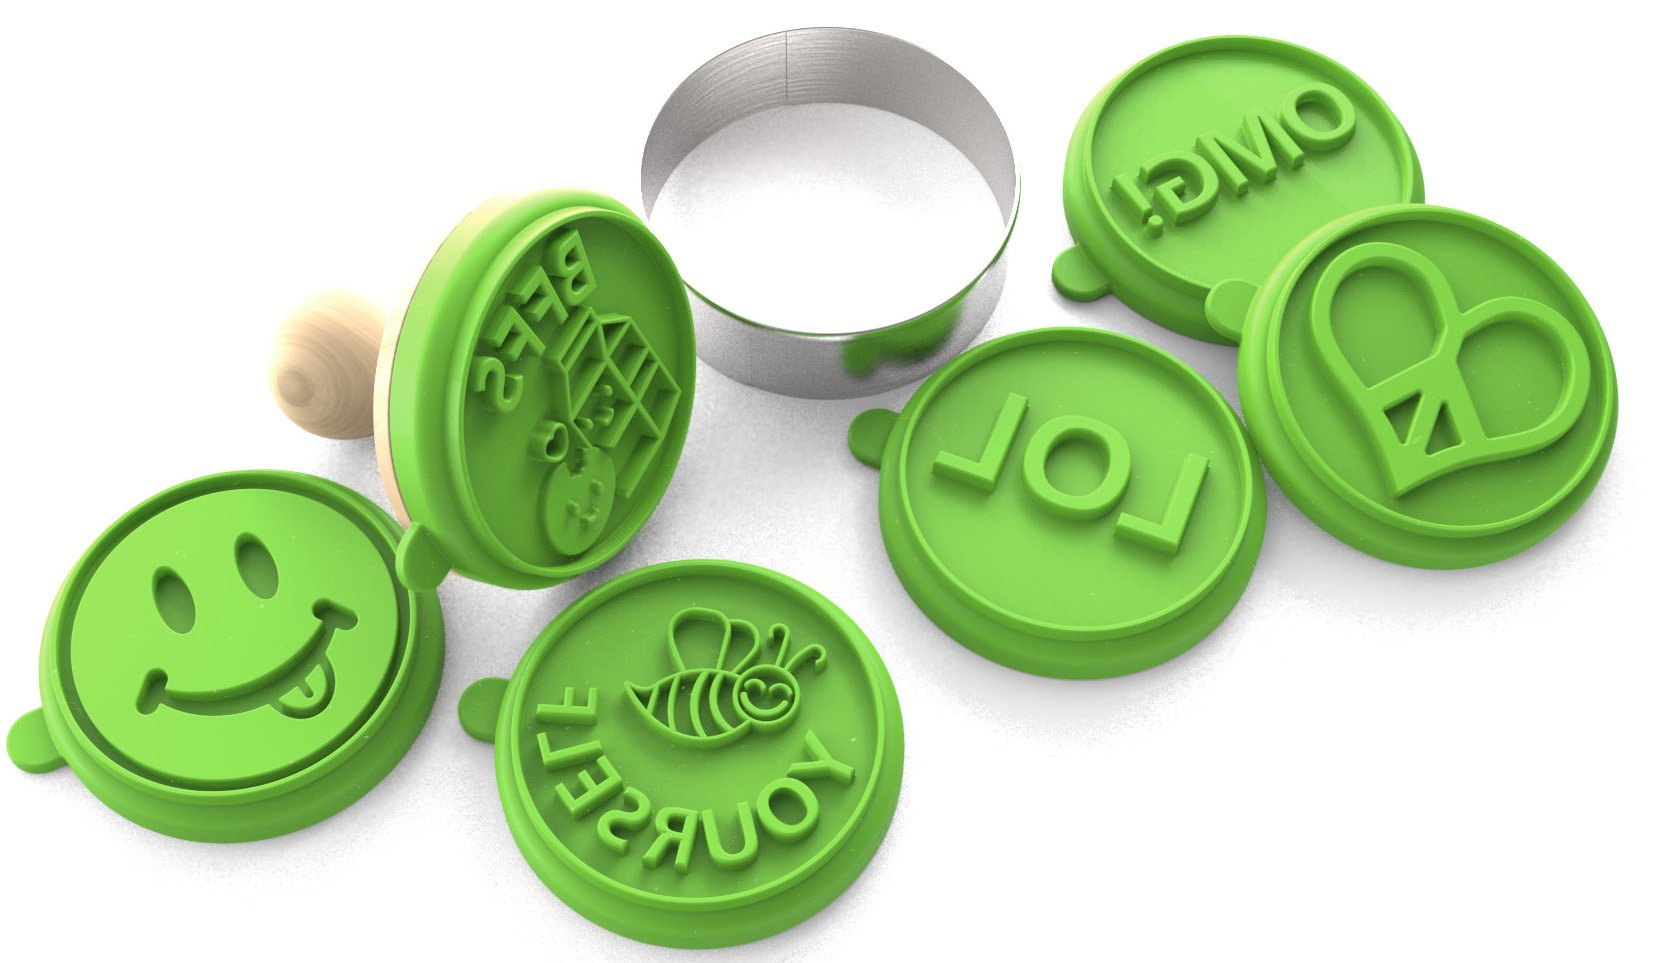 Silicandy Cookie Stamp Molds - 4/6 Set - Great for Activities with Kids - Themes are Get Well Soon / Royal Princess / Social Media Tween / Spread the Love – Silicone Kit for Homemade Cookies [Green]